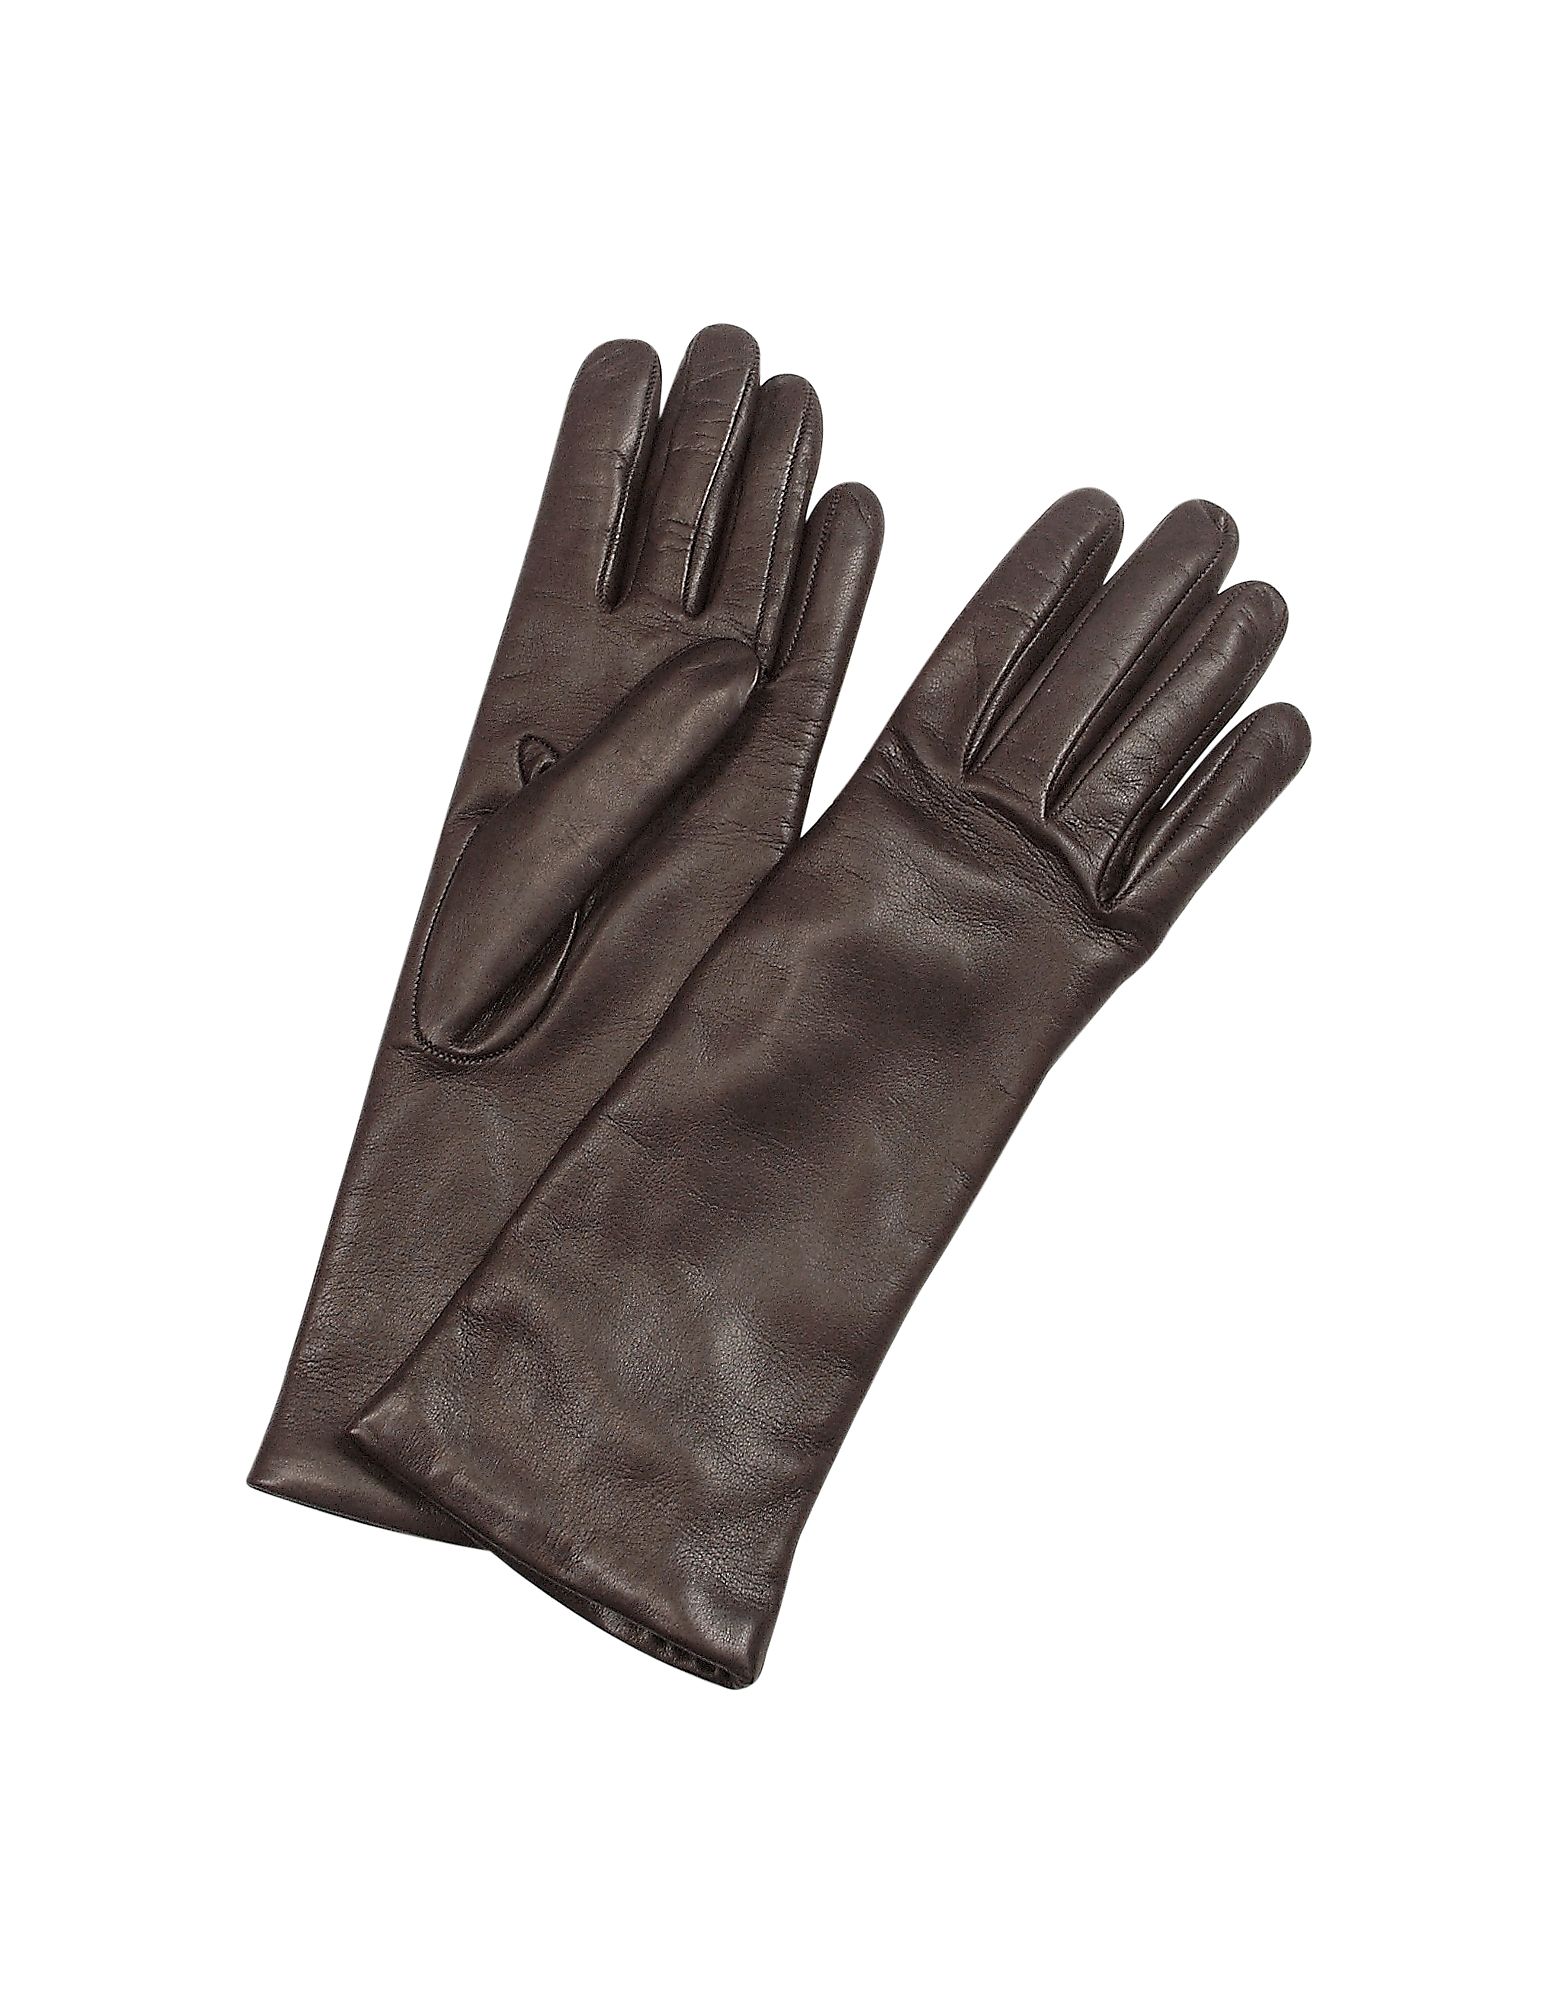 Edwardian Gloves, Handbag, Hair Combs, Wigs Forzieri  Womens Gloves Womens Cashmere Lined Dark Brown Italian Leather Long Gloves $219.00 AT vintagedancer.com